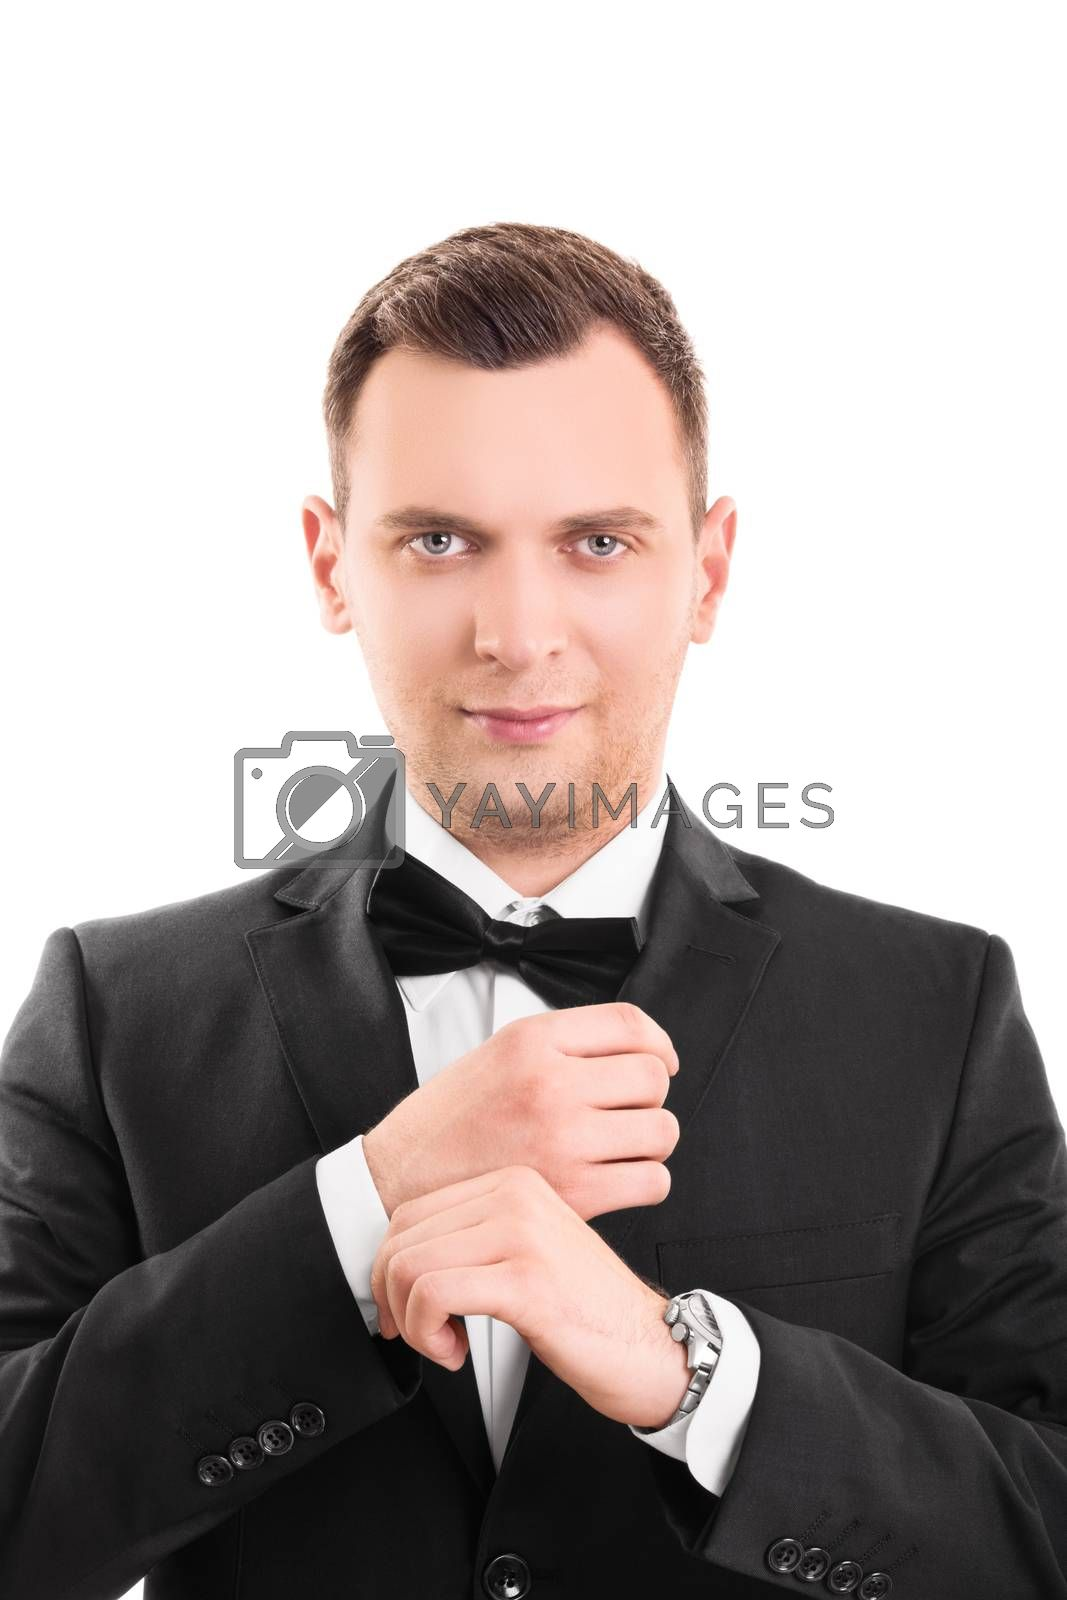 Portrait of a fashionable young man in a suit by Mendelex